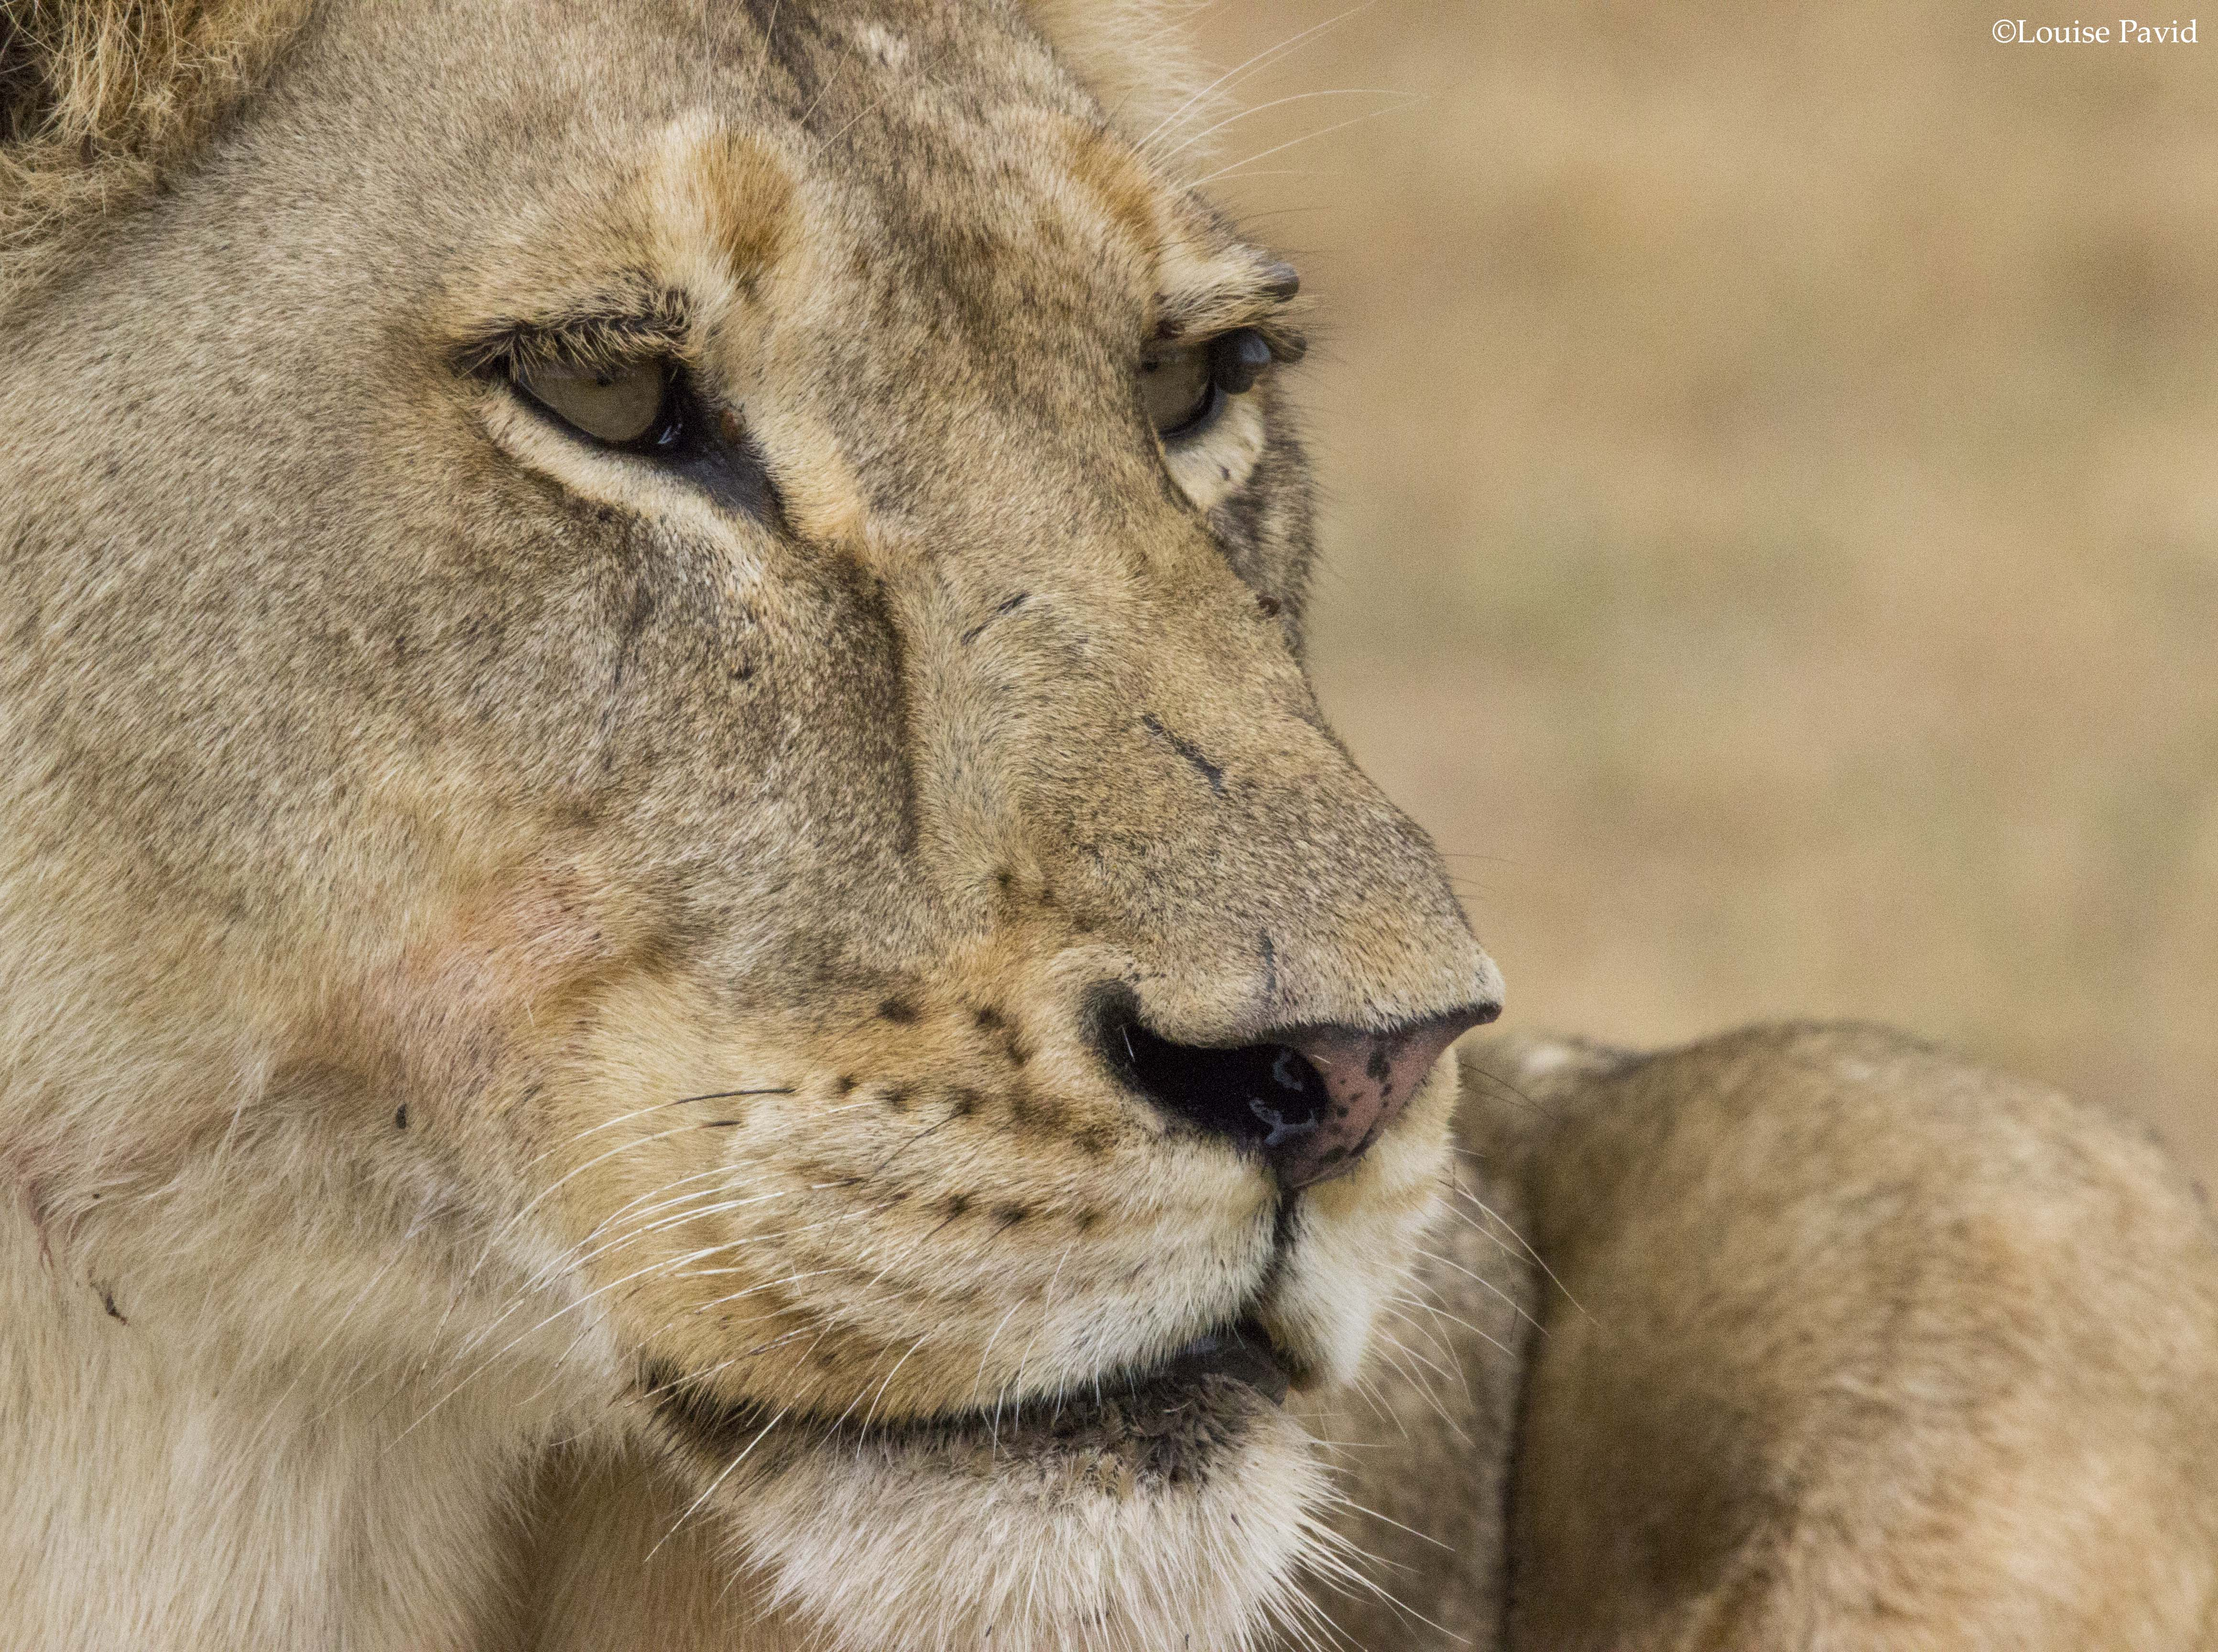 cat-report Archives - WildEarth